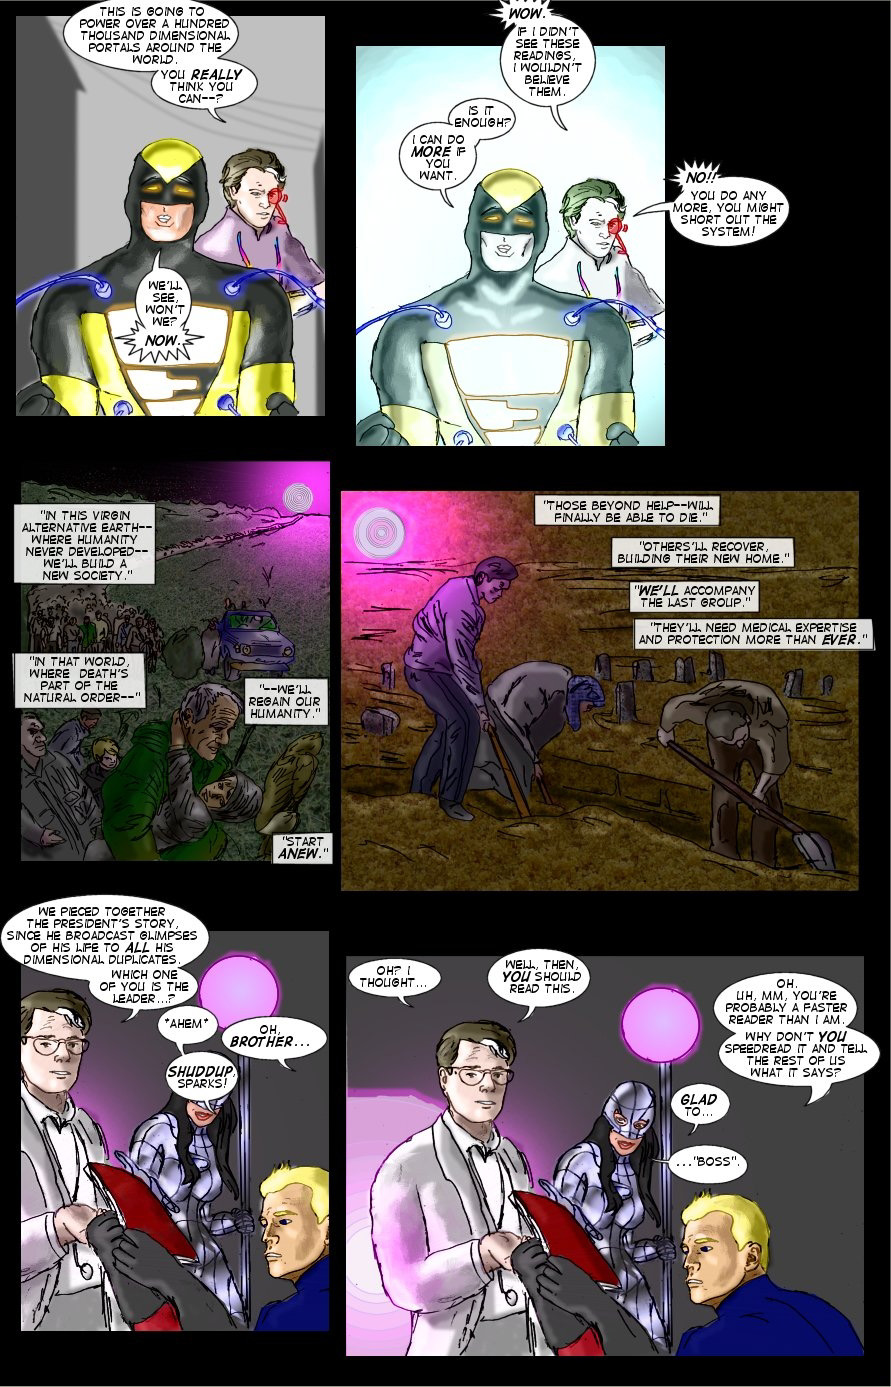 Crossoverkill - Chapter 5, Page 11